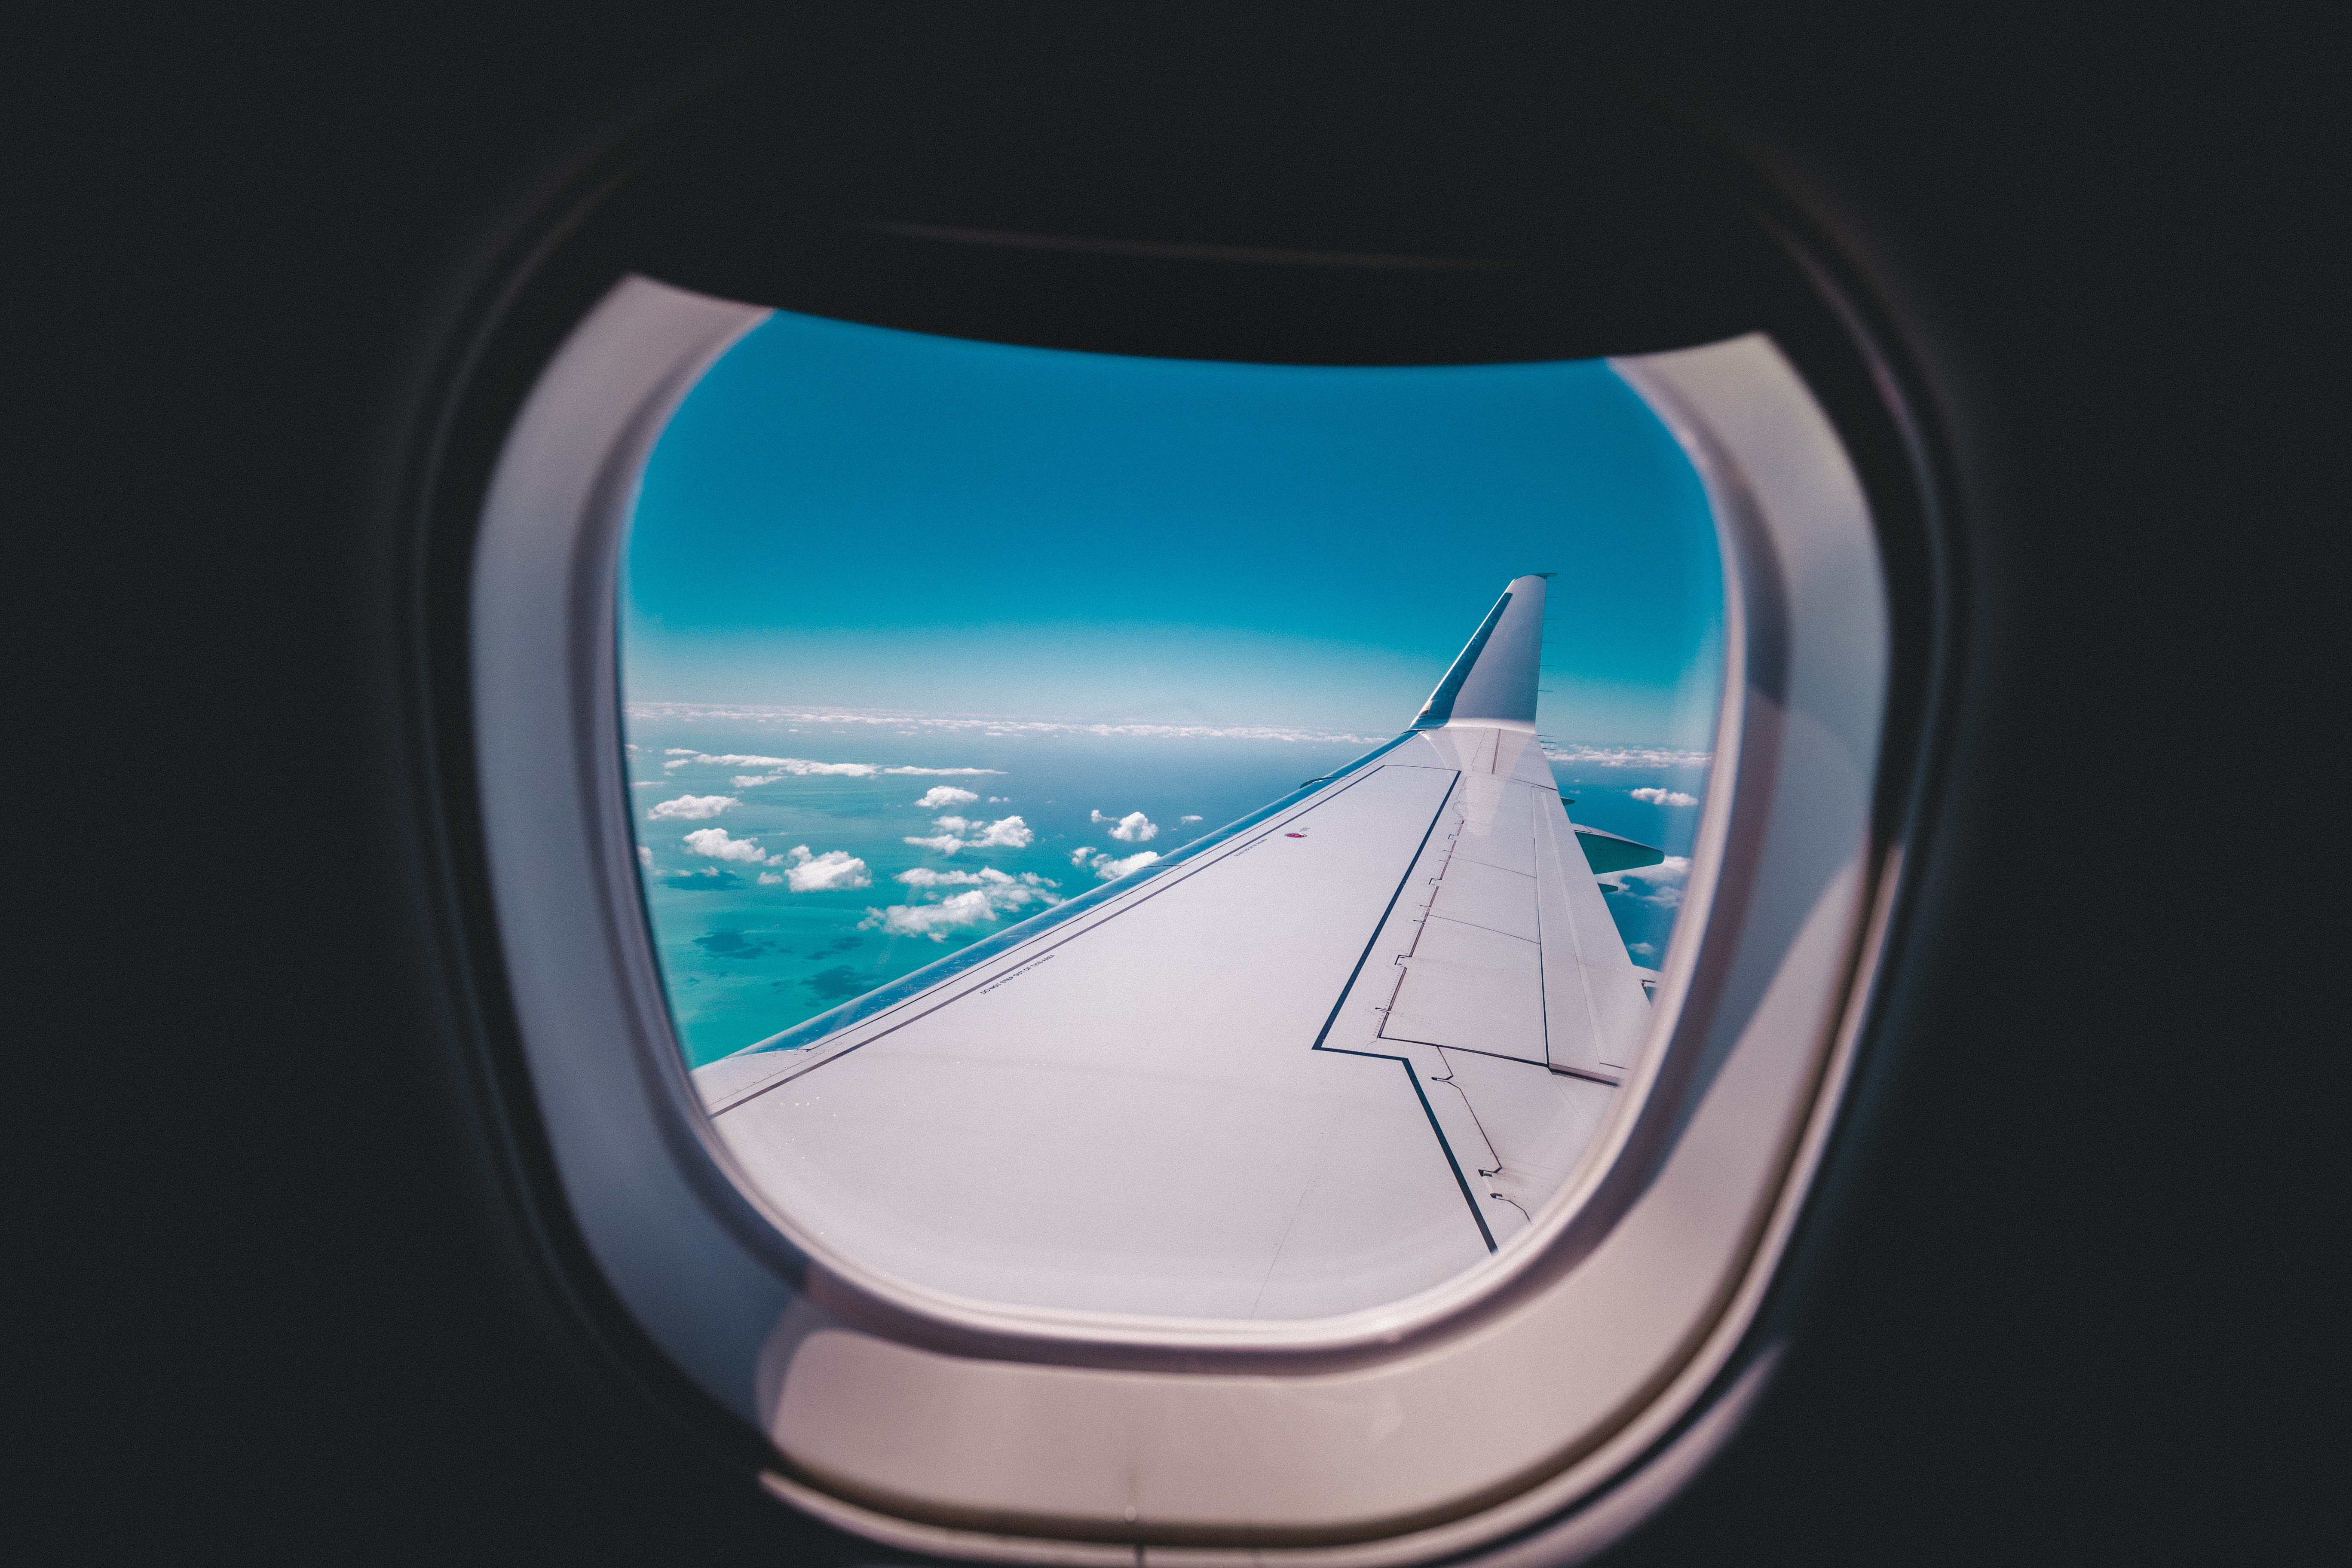 The view from an airplane window.